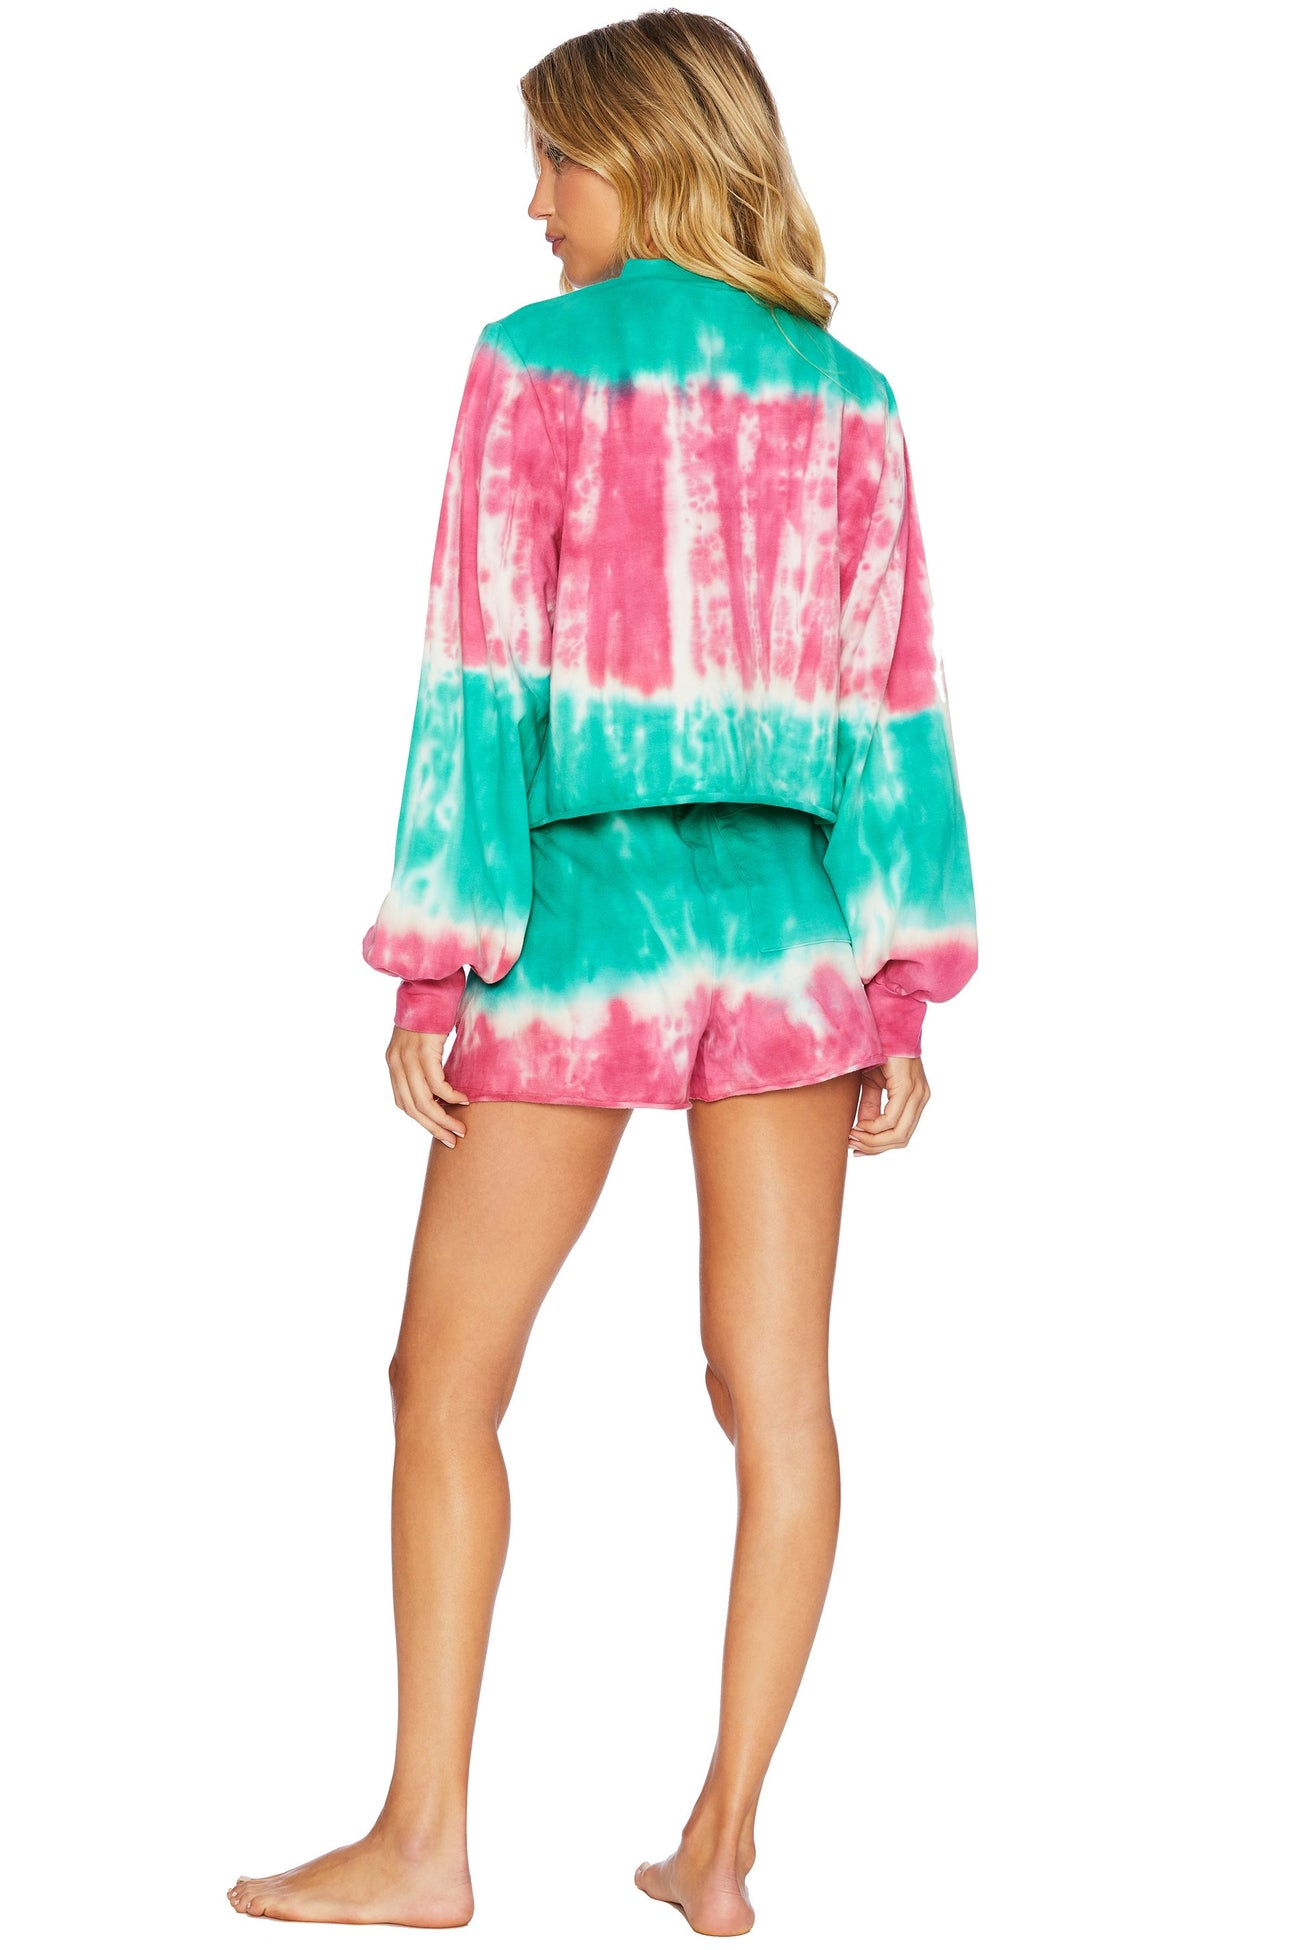 Tie Dye Short in Tea/Azalea